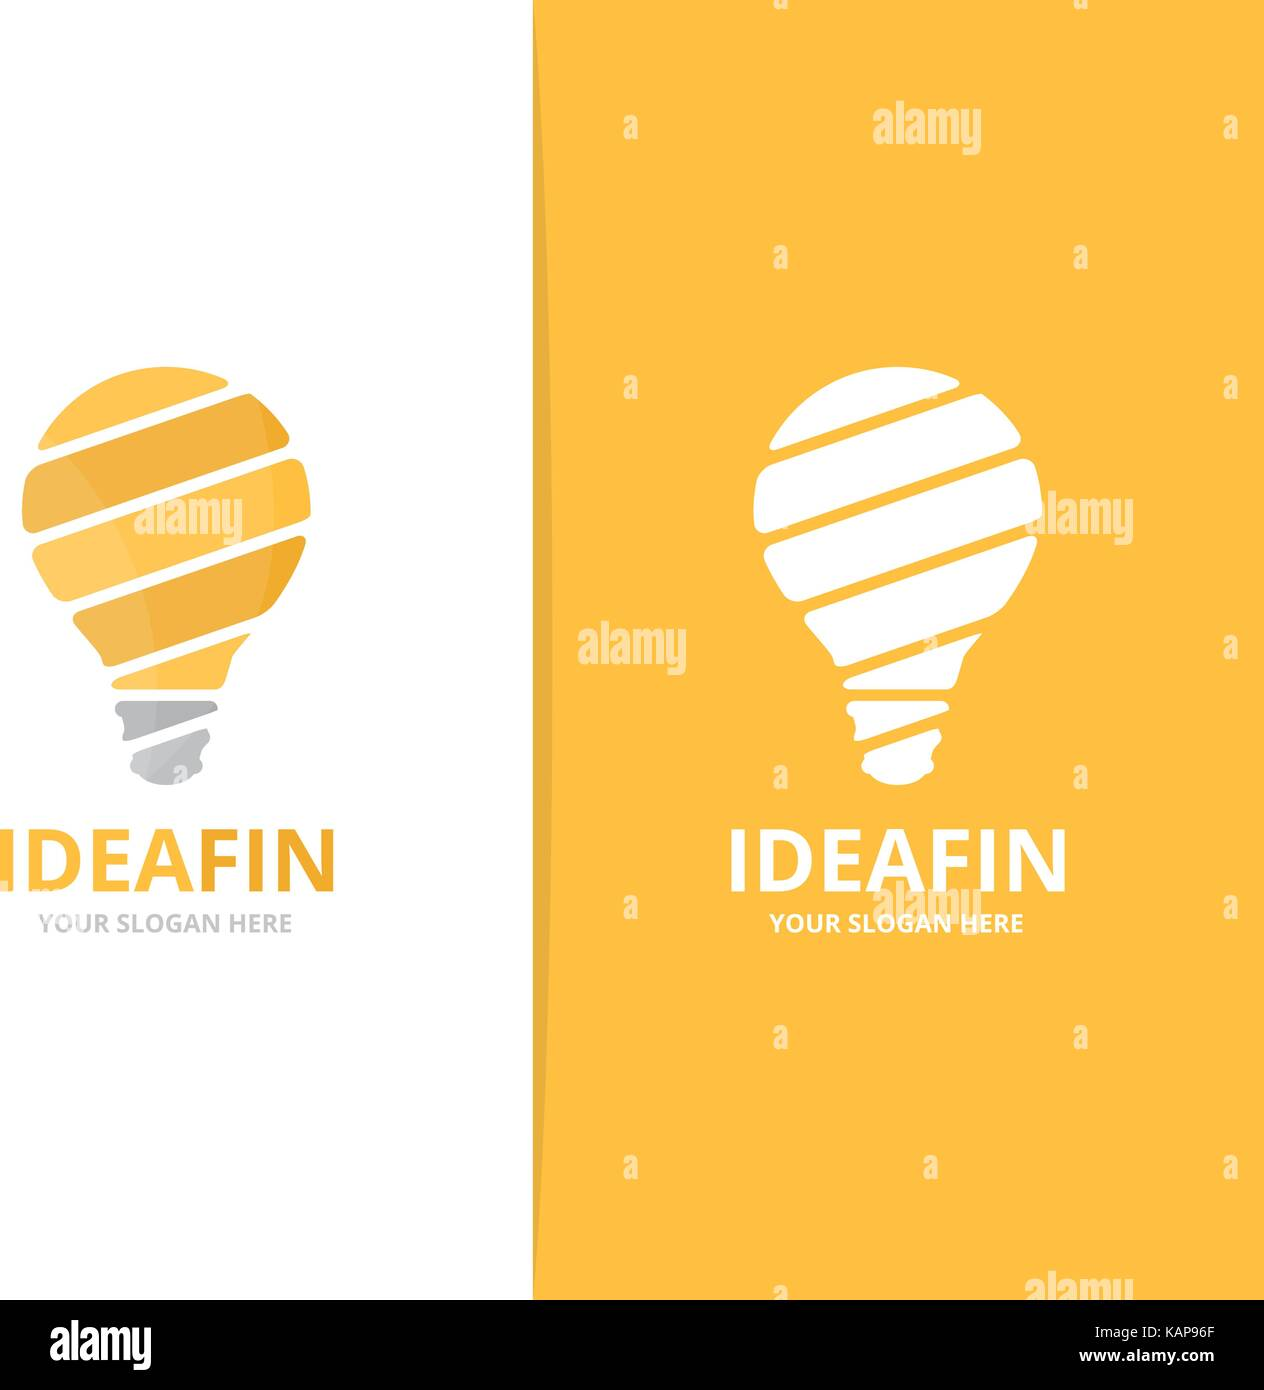 Set Of Hand Drawn Light Bulbs Symbol Of Ideas Stock: Light Bulb Logo Stock Photos & Light Bulb Logo Stock